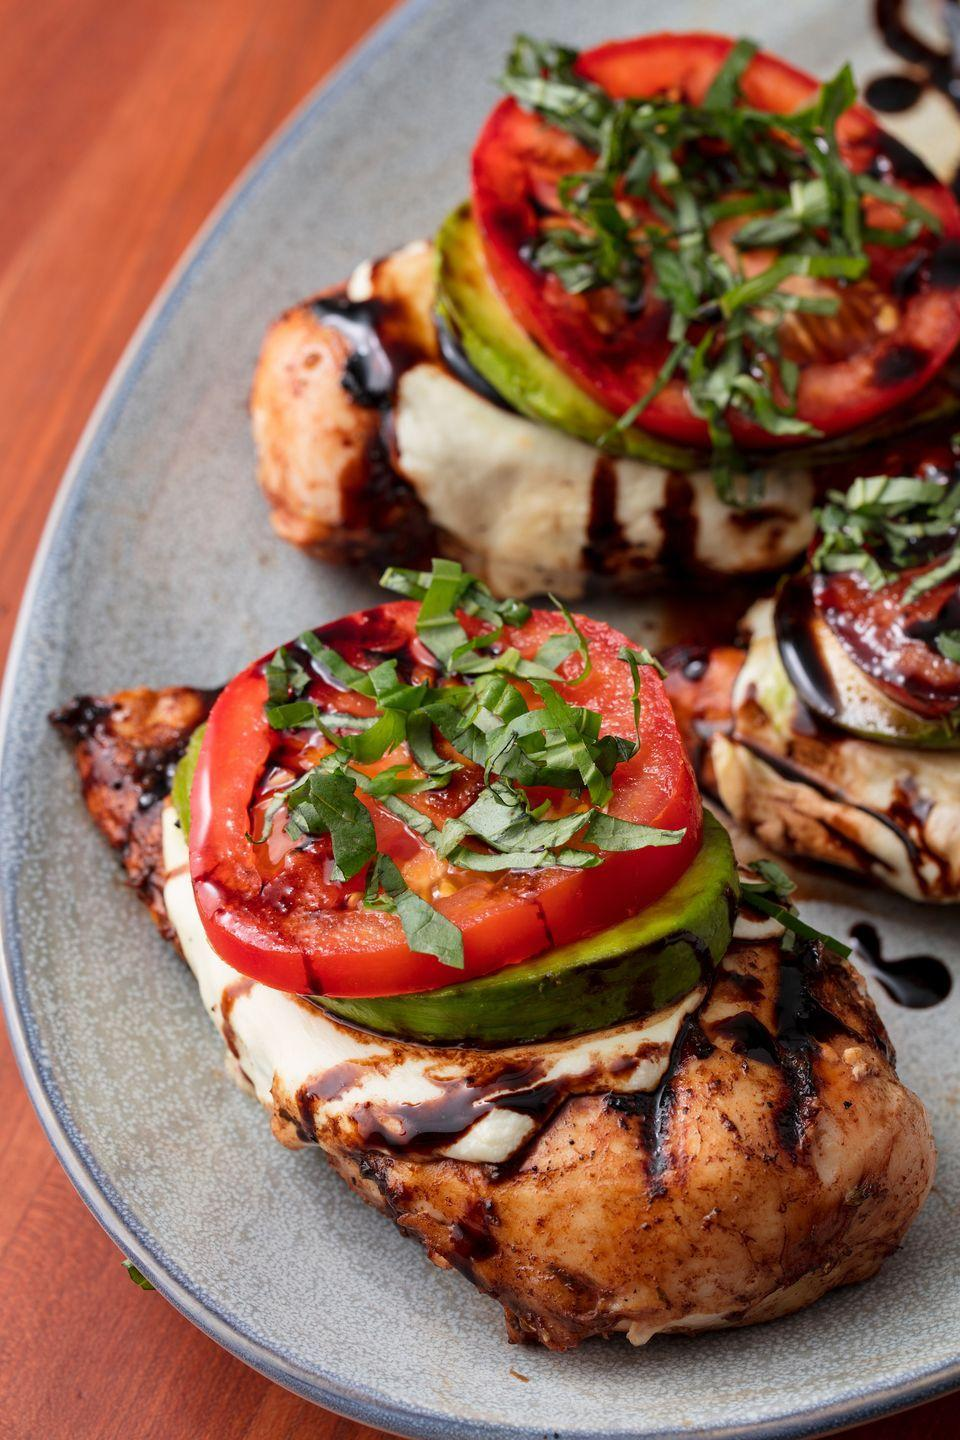 """<p>You'll never settled for boring grilled chicken again. </p><p>Get the recipe from <a href=""""https://www.delish.com/cooking/recipe-ideas/recipes/a53158/california-grilled-chicken-recipe/"""" rel=""""nofollow noopener"""" target=""""_blank"""" data-ylk=""""slk:Delish"""" class=""""link rapid-noclick-resp"""">Delish</a>.</p>"""